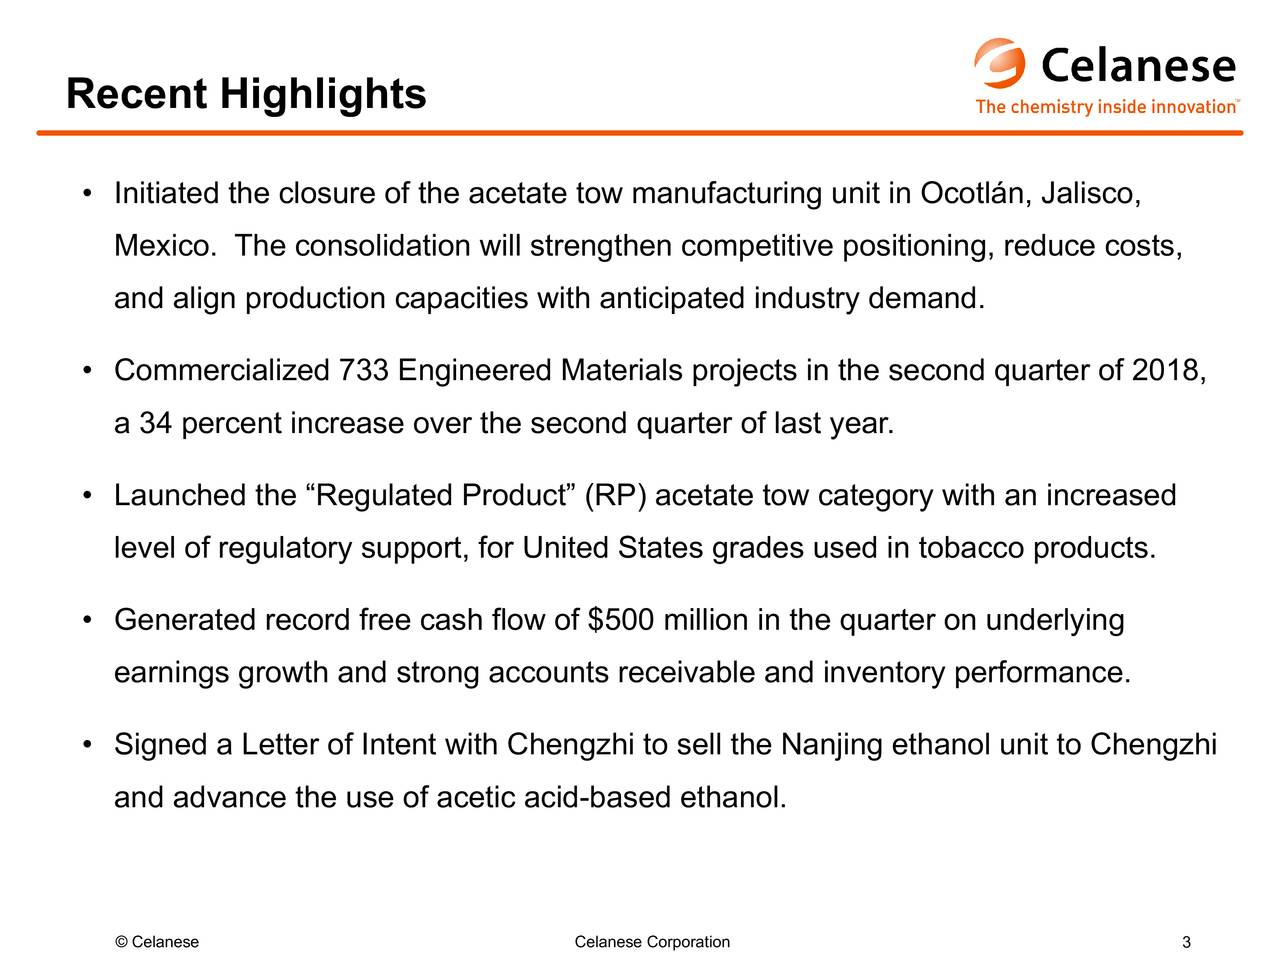 """• Initiated the closure of the acetate tow manufacturing unit in Ocotlán, Jalisco, Mexico. The consolidation will strengthen competitive positioning, reduce costs, and align production capacities with anticipated industry demand. • Commercialized 733 Engineered Materials projects in the second quarter of 2018, a 34 percent increase over the second quarter of last year. • Launched the """"Regulated Product"""" (RP) acetate tow category with an increased level of regulatory support, for United States grades used in tobacco products. • Generated record free cash flow of $500 million in the quarter on underlying earnings growth and strong accounts receivable and inventory performance. • Signed a Letter of Intent with Chengzhi to sell the Nanjing ethanol unit to Chengzhi and advance the use of acetic acid-based ethanol."""